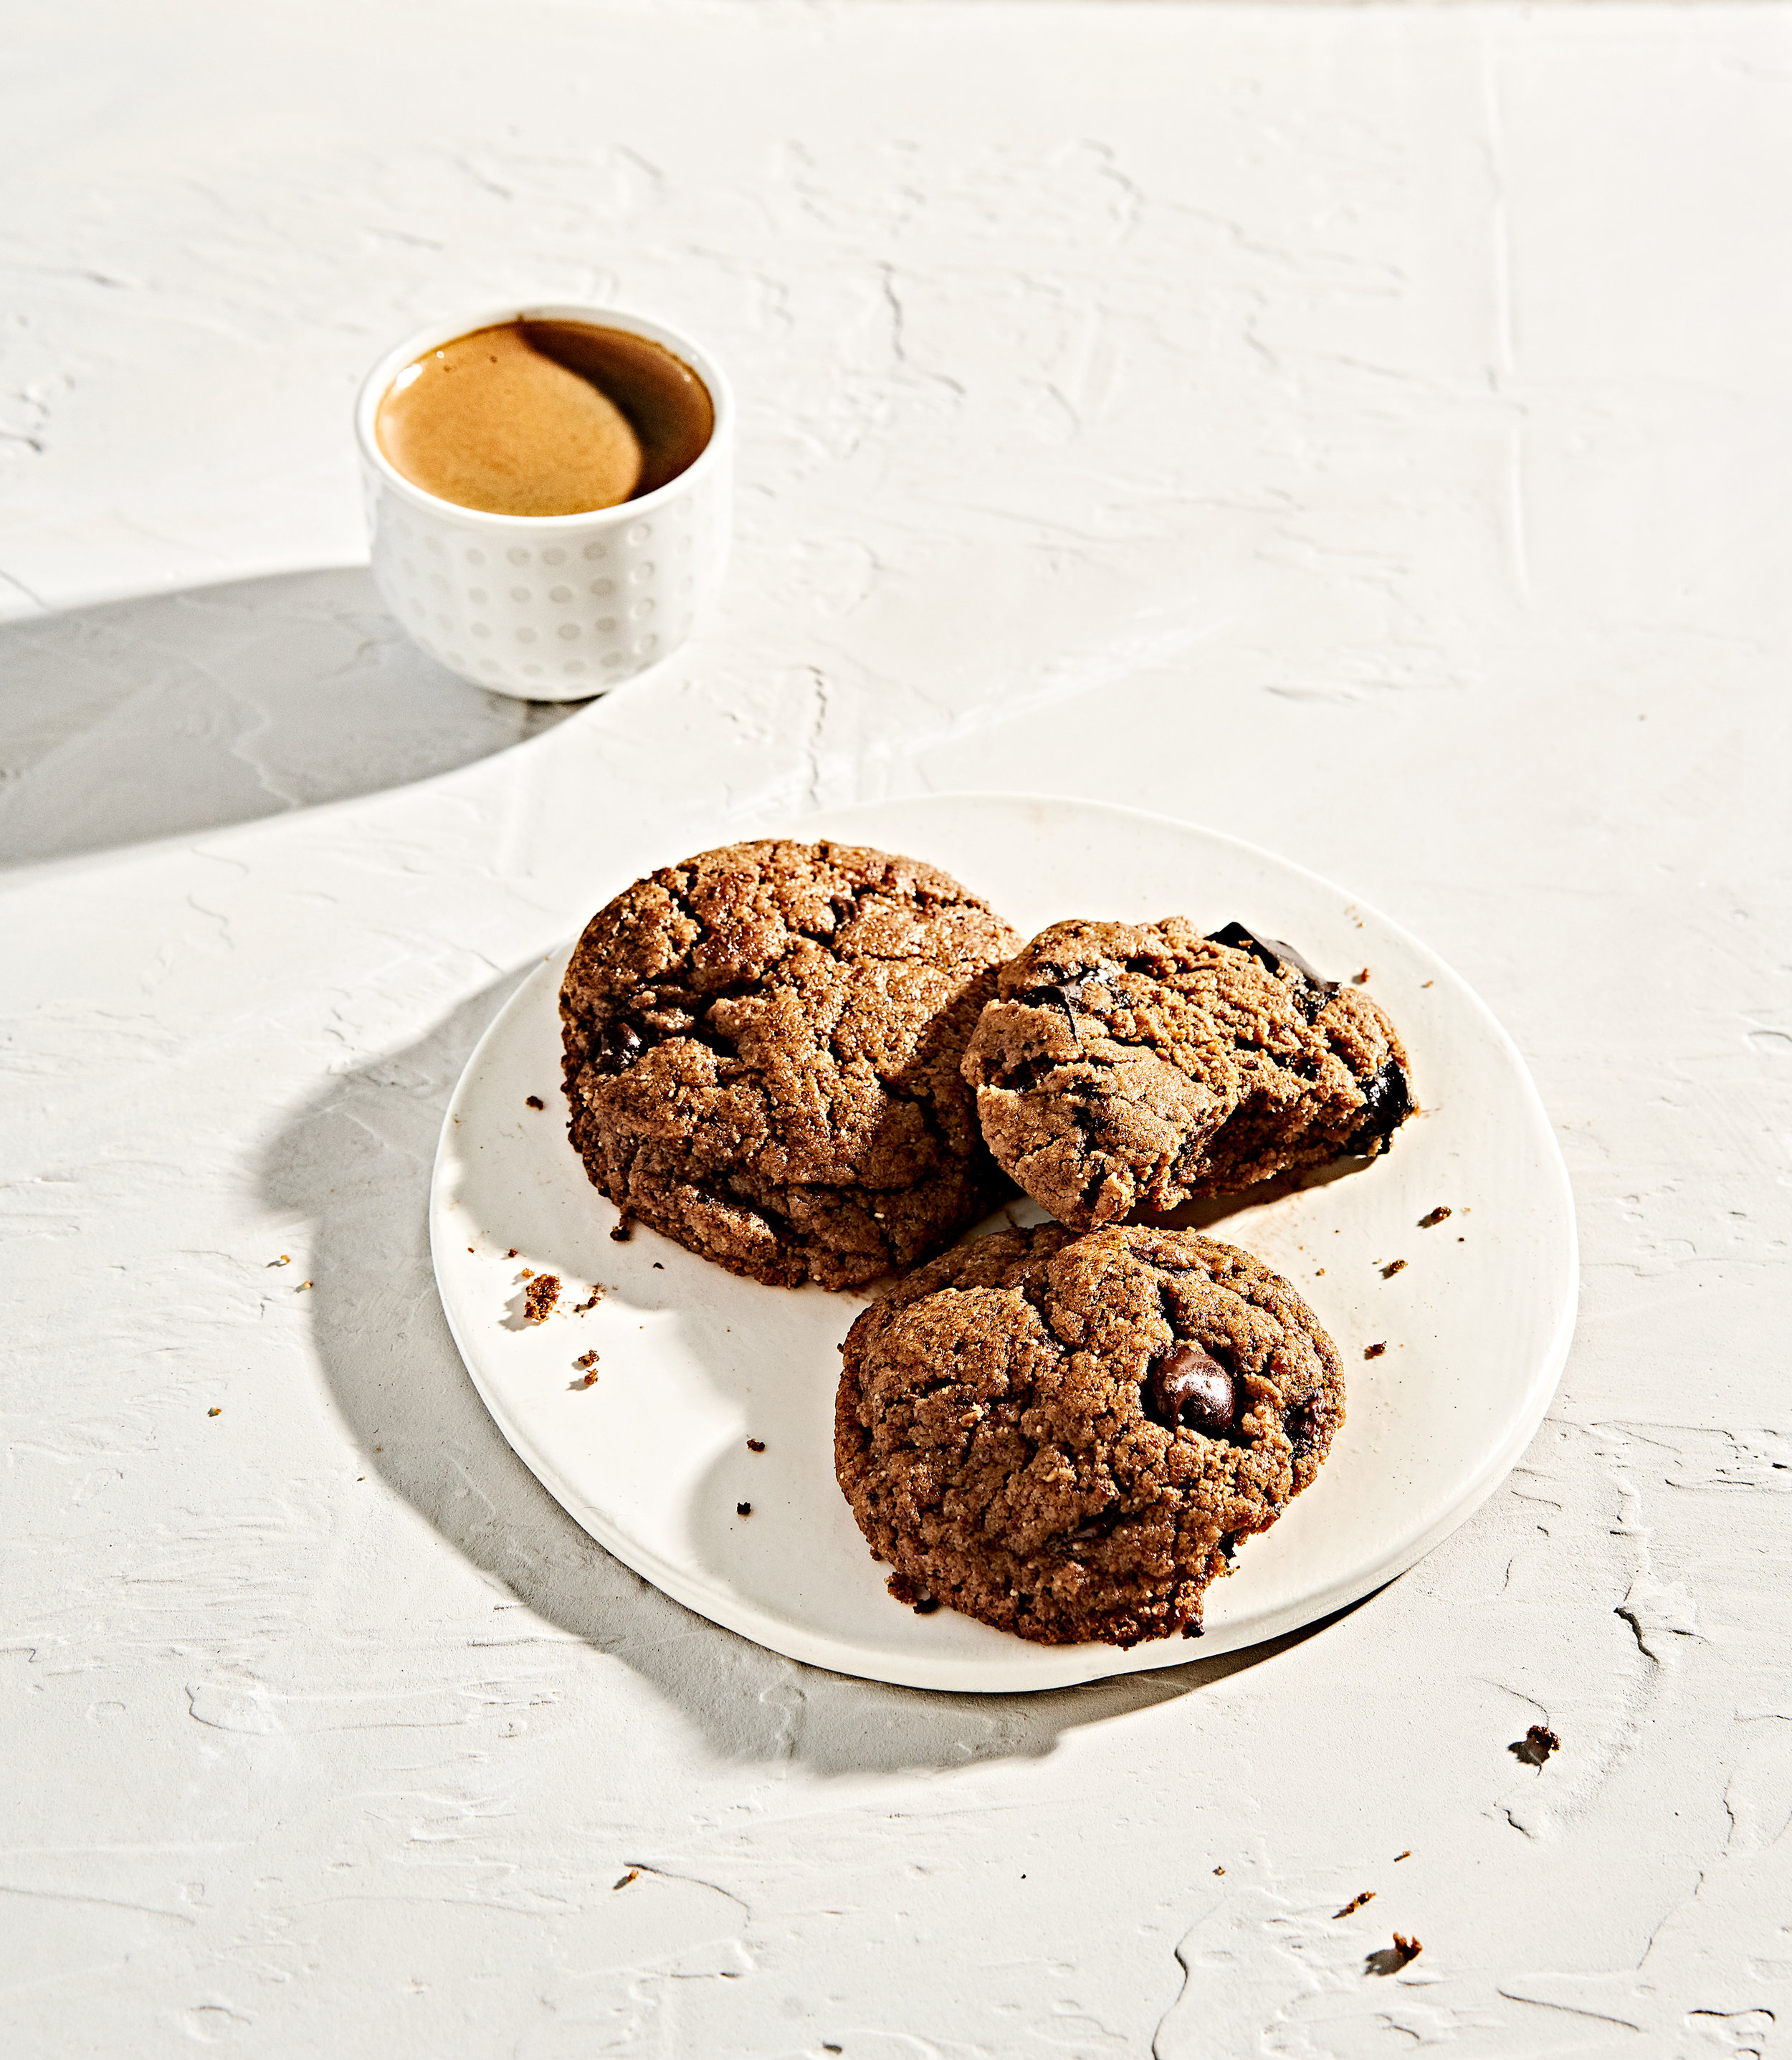 Flourless almond butter chocolate chip cookies with espresso shot